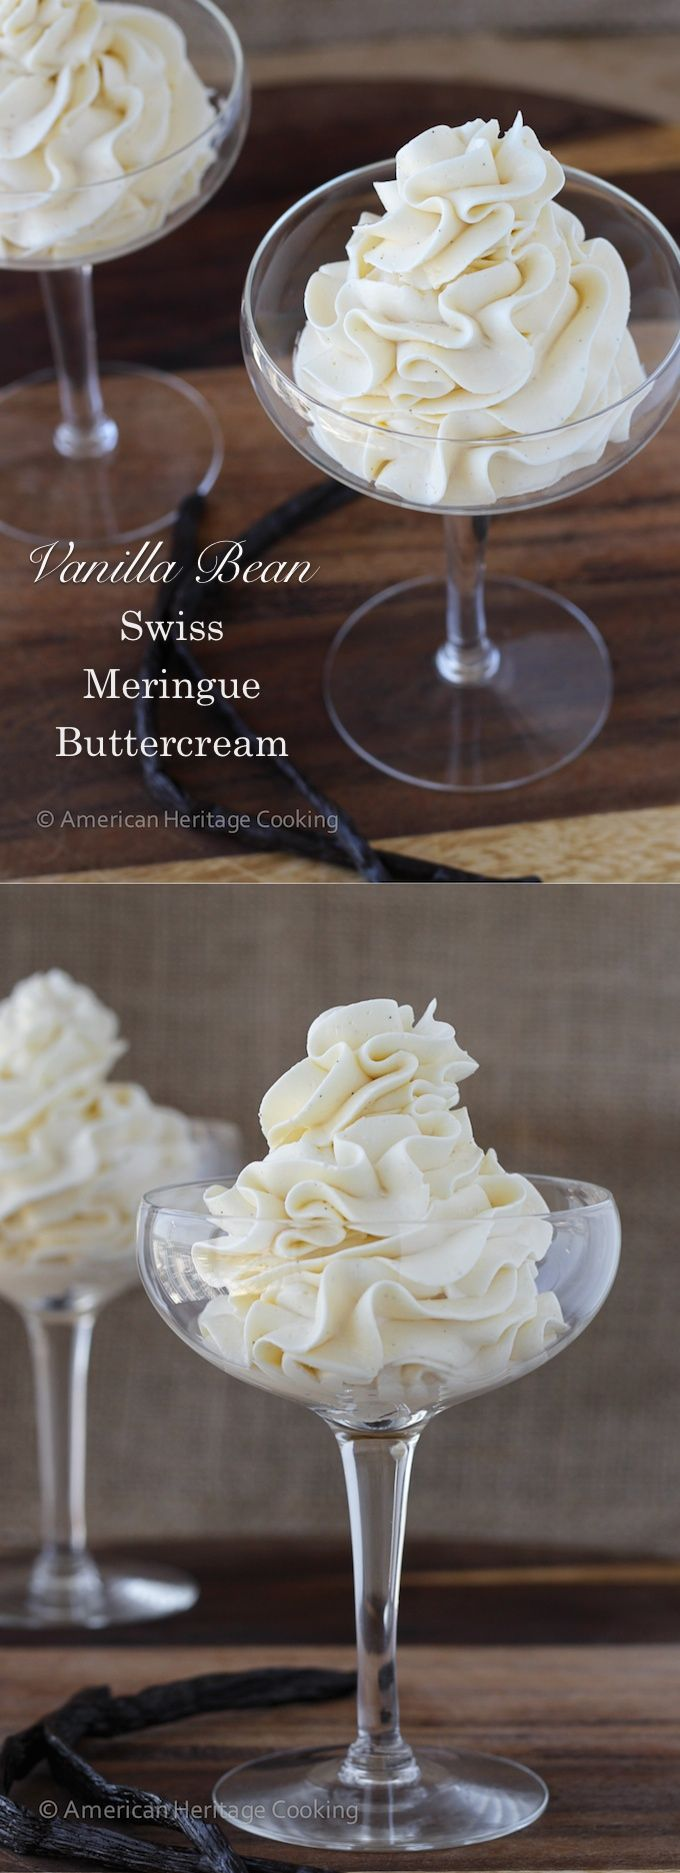 Silky smooth Vanilla Bean Swiss Meringue Buttercream - Its easier than you think!! American Heritage Cooking